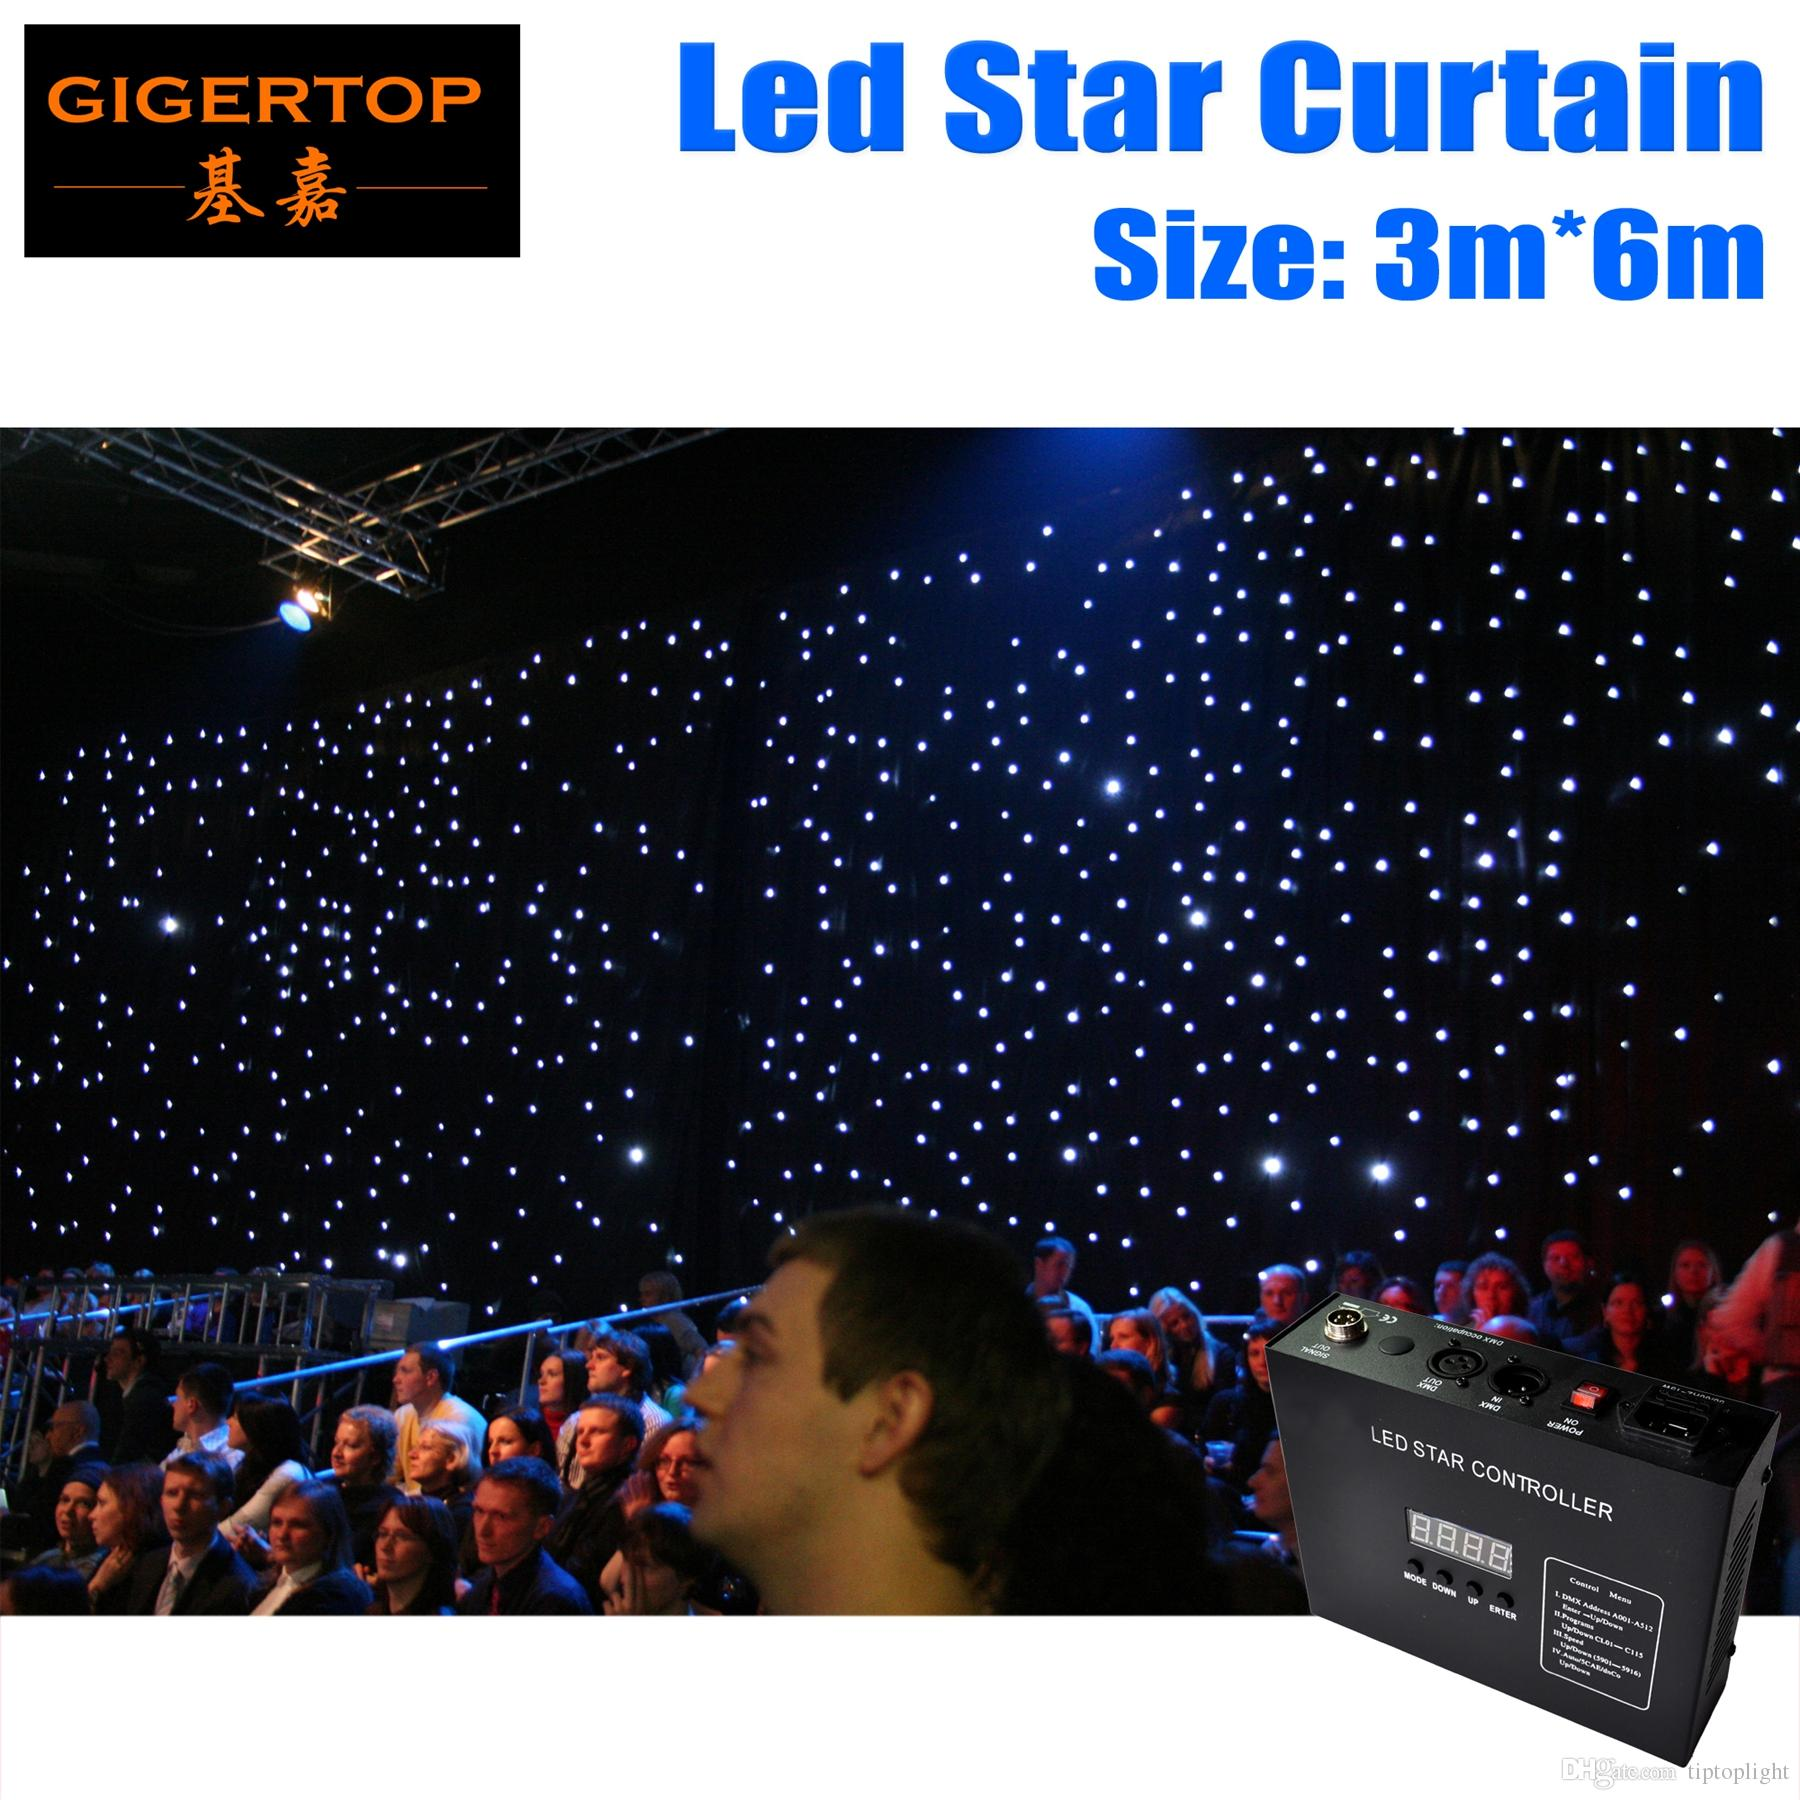 Color booth online - Freeshipping 3m 6m Led Star Curtain Rgbw 240pcs Led Color Curtain Dj Skirt Dj Booth Dmx Controller Control Auto Sound Mode Flam Retardant